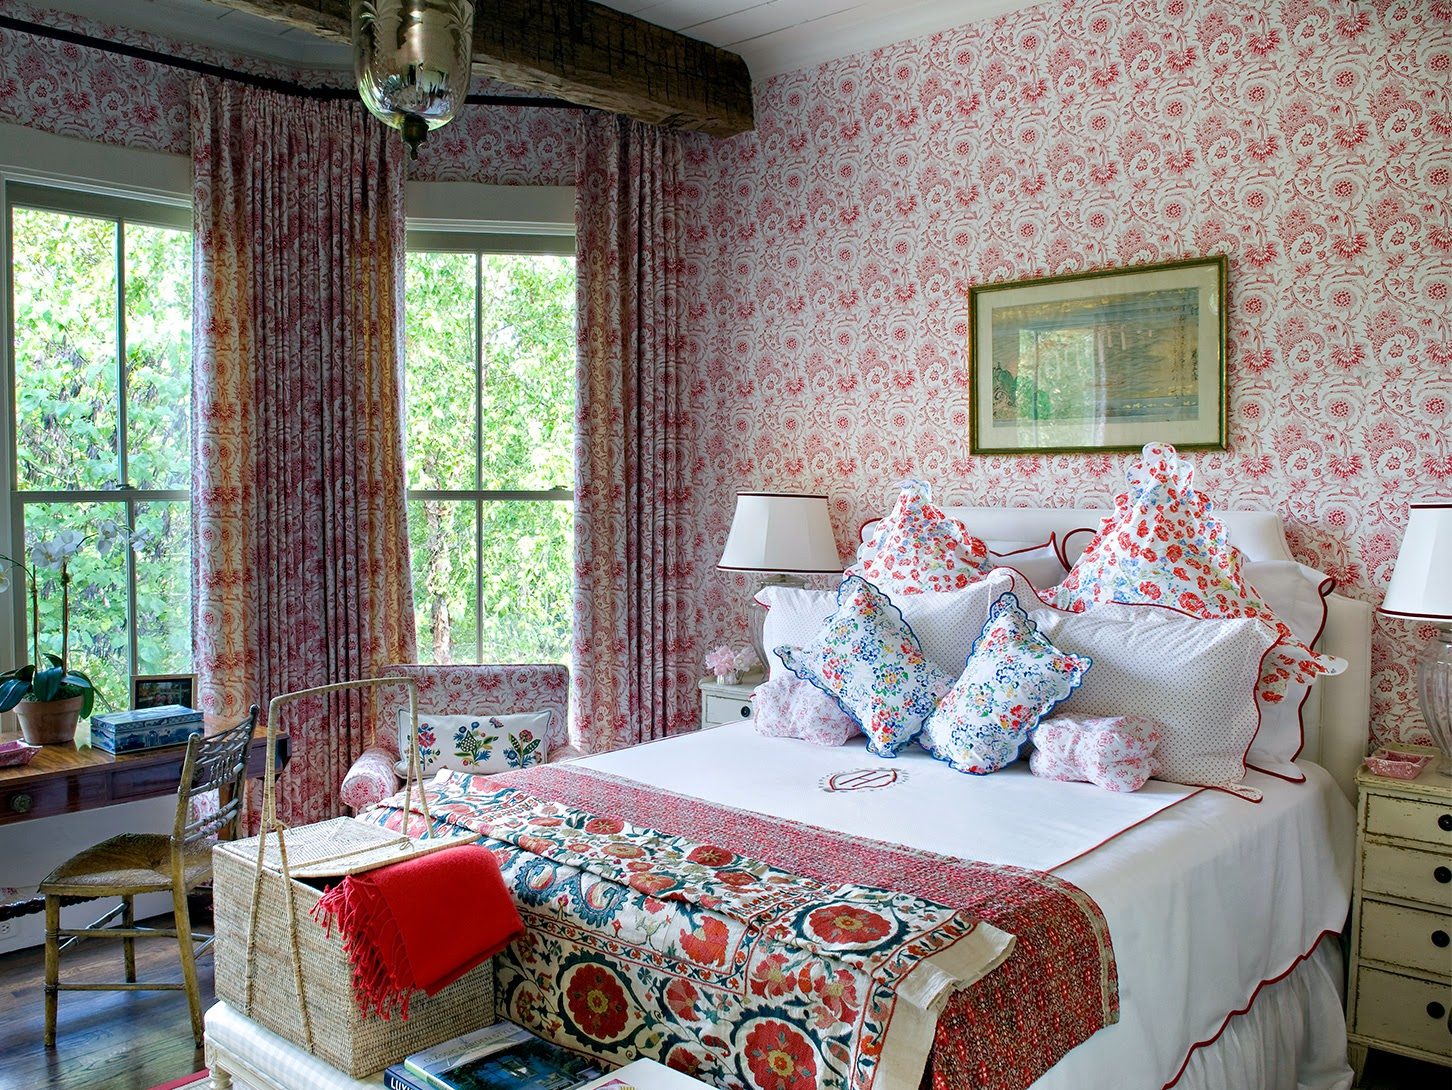 jane_scott_hodges-red-traditional-bedroom